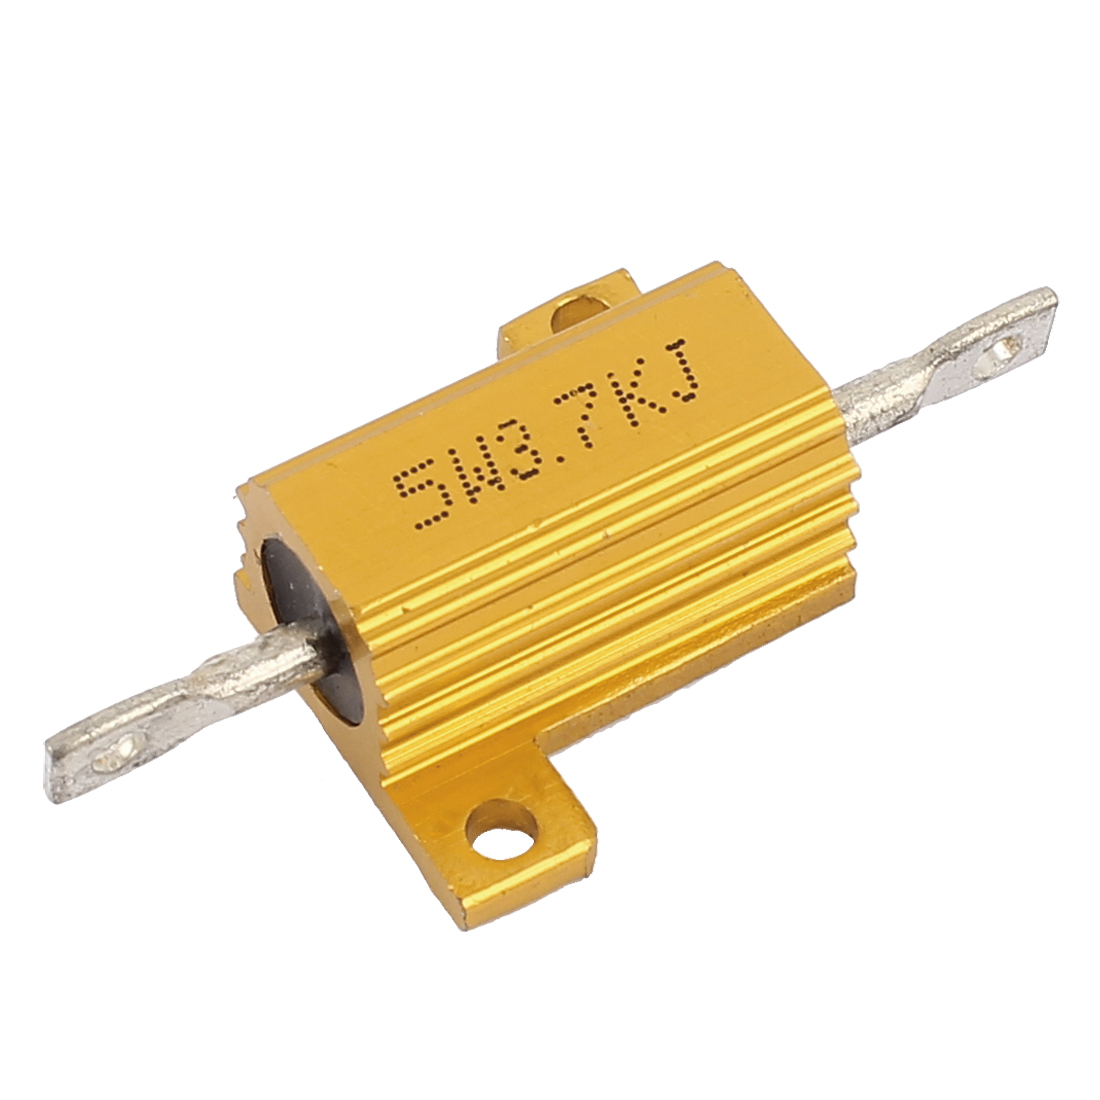 Aluminium Housing Chassis Mount Wirewound Power Resistors 3.7K Ohm 5W